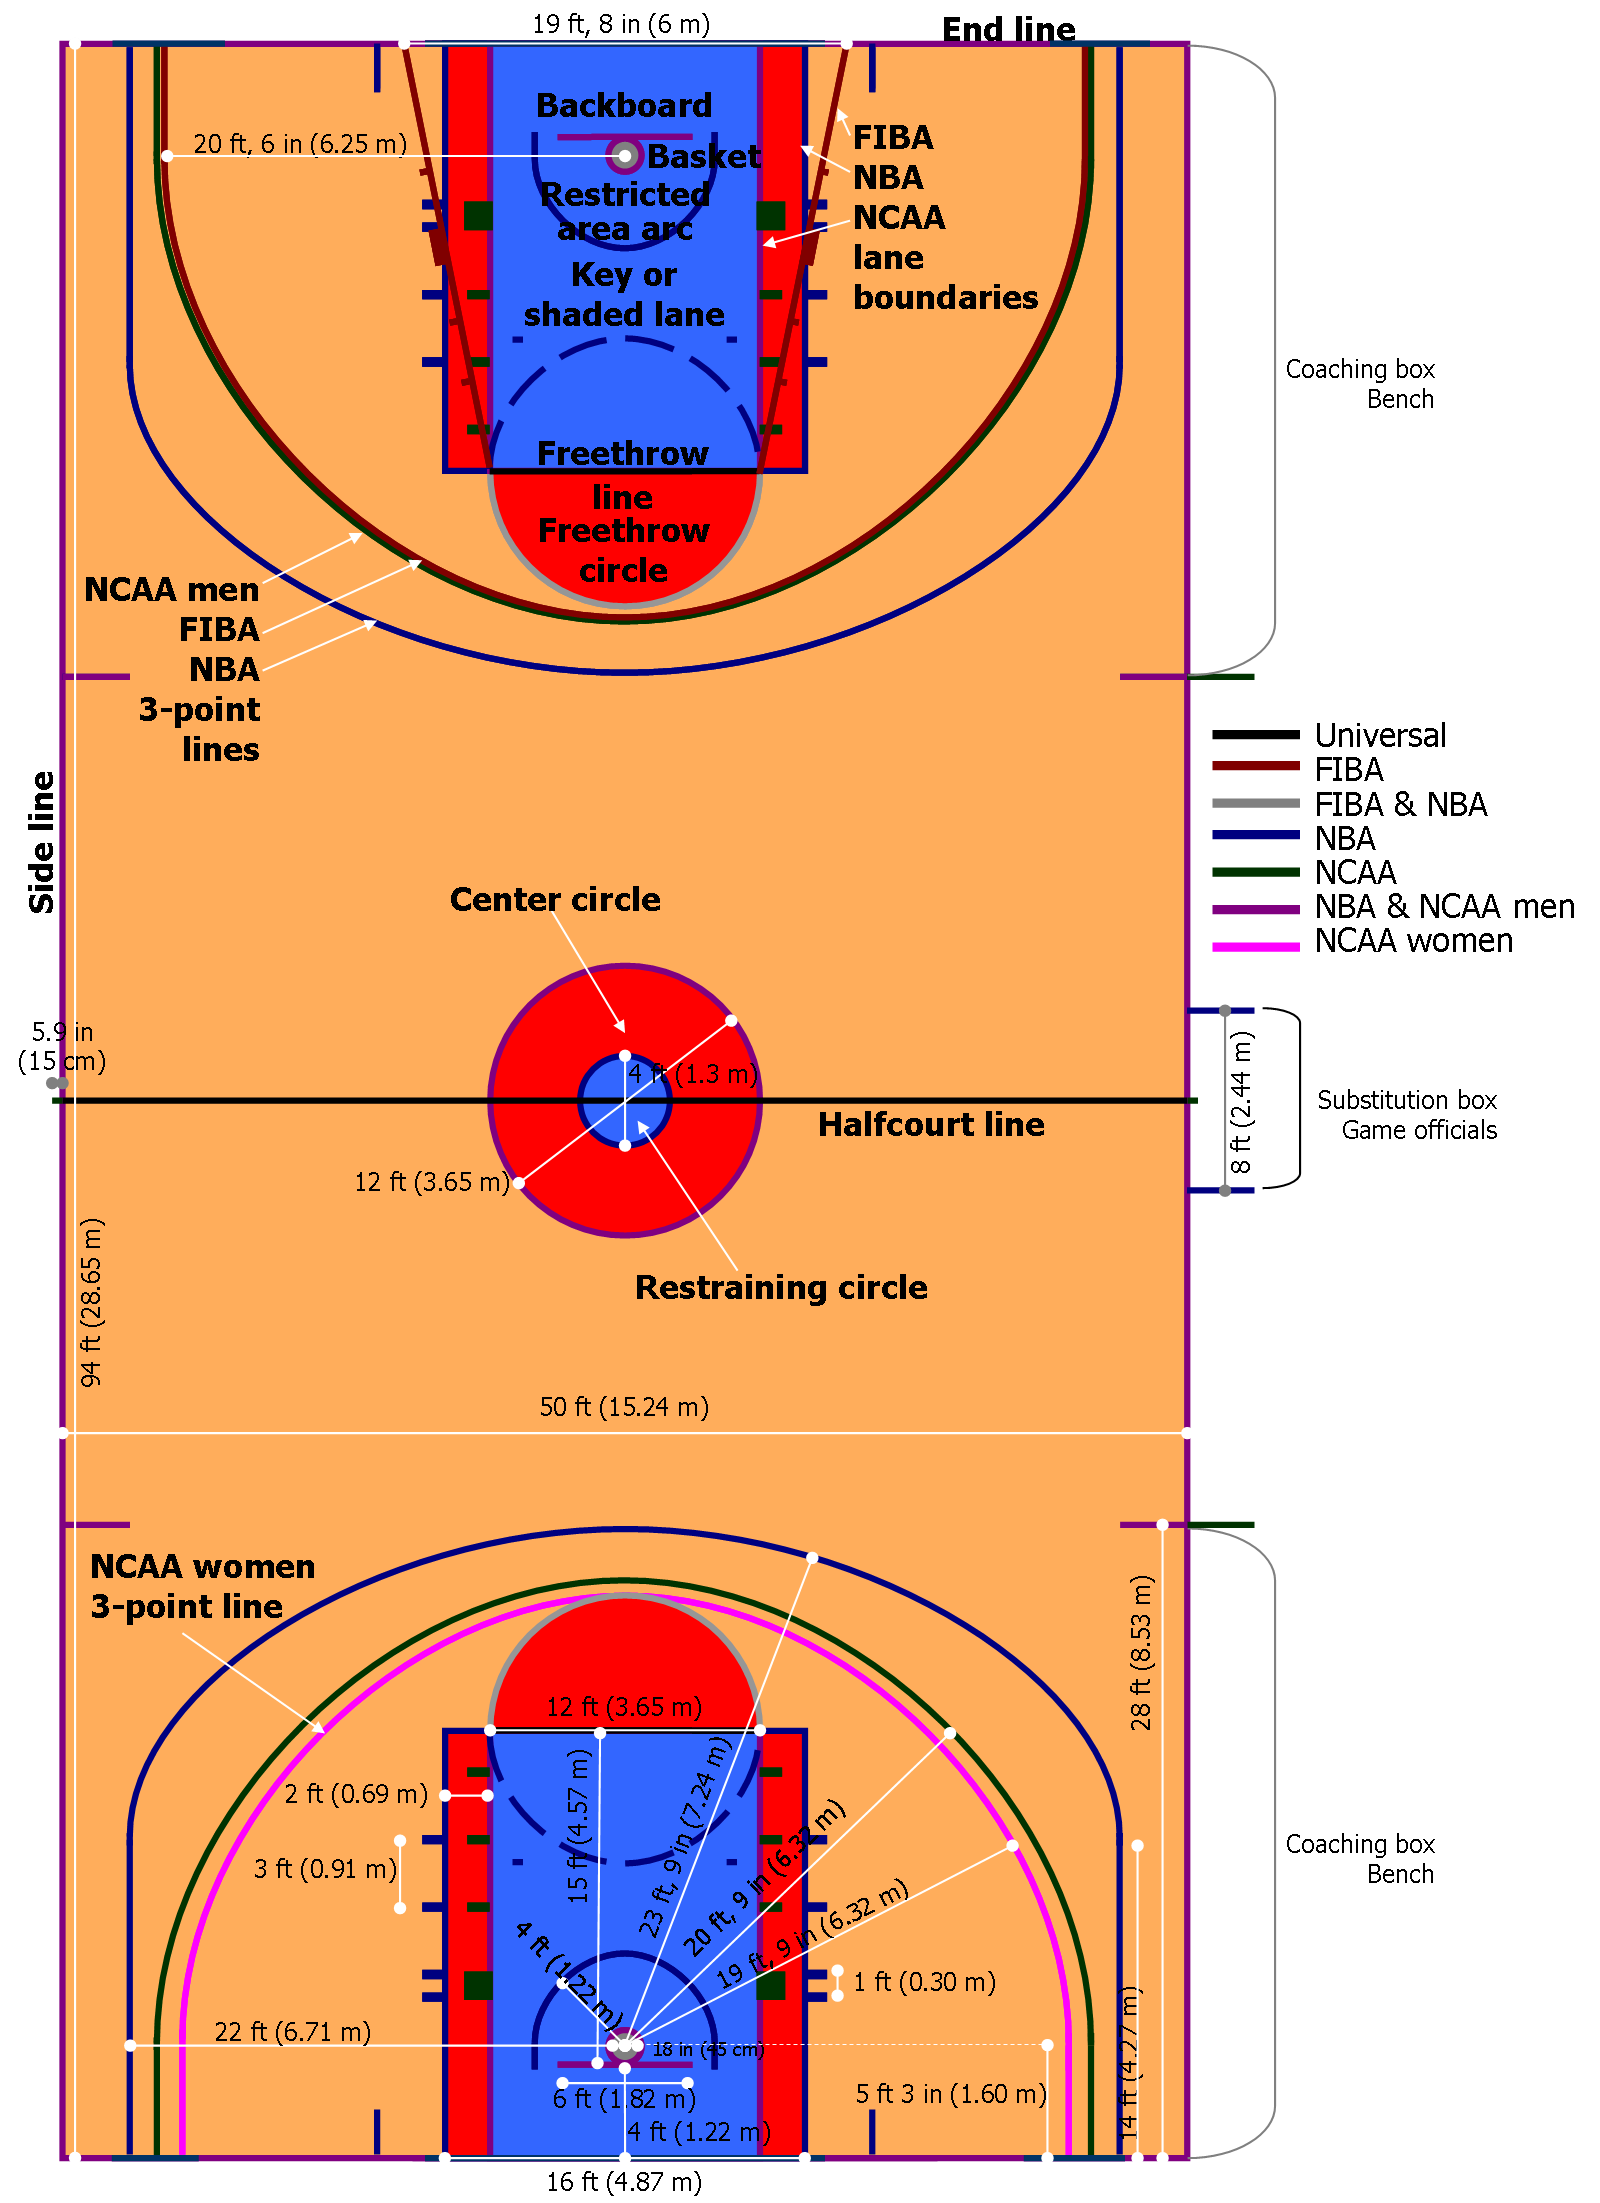 Basketball court dimensions postema performance Dimensions of a basketball court